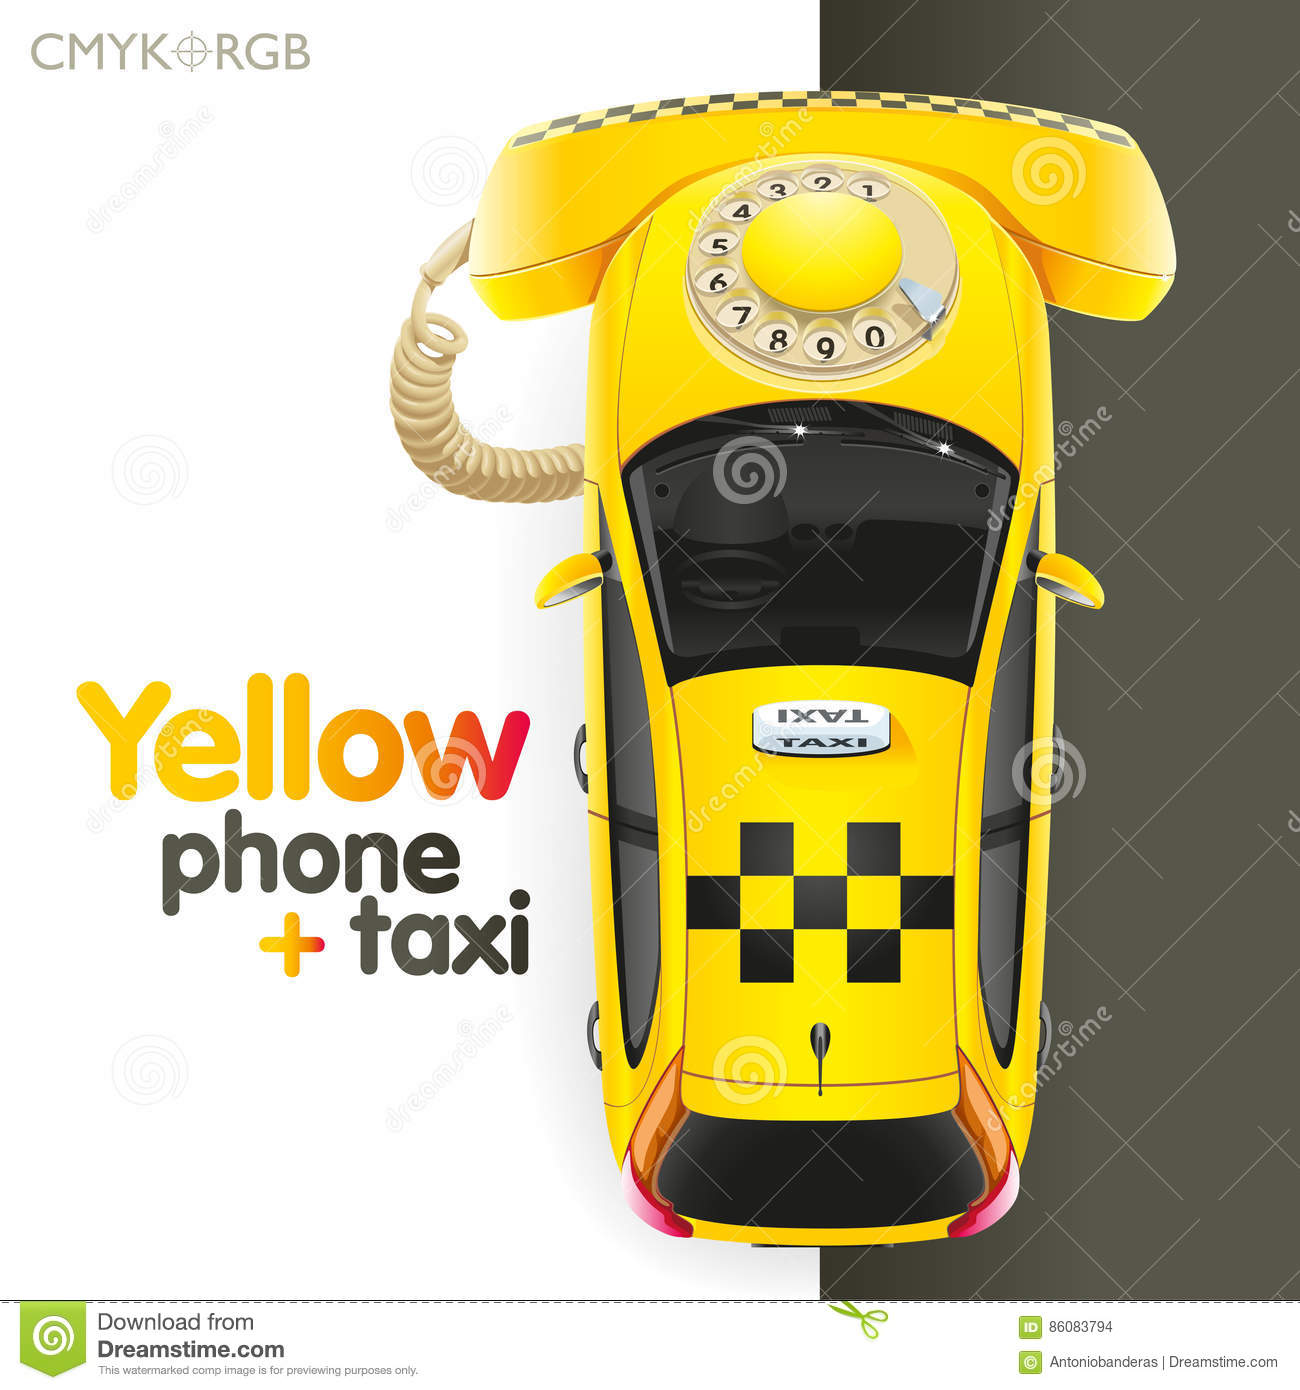 Taxi Yellow Phone Stock Vector. Illustration Of Taxi